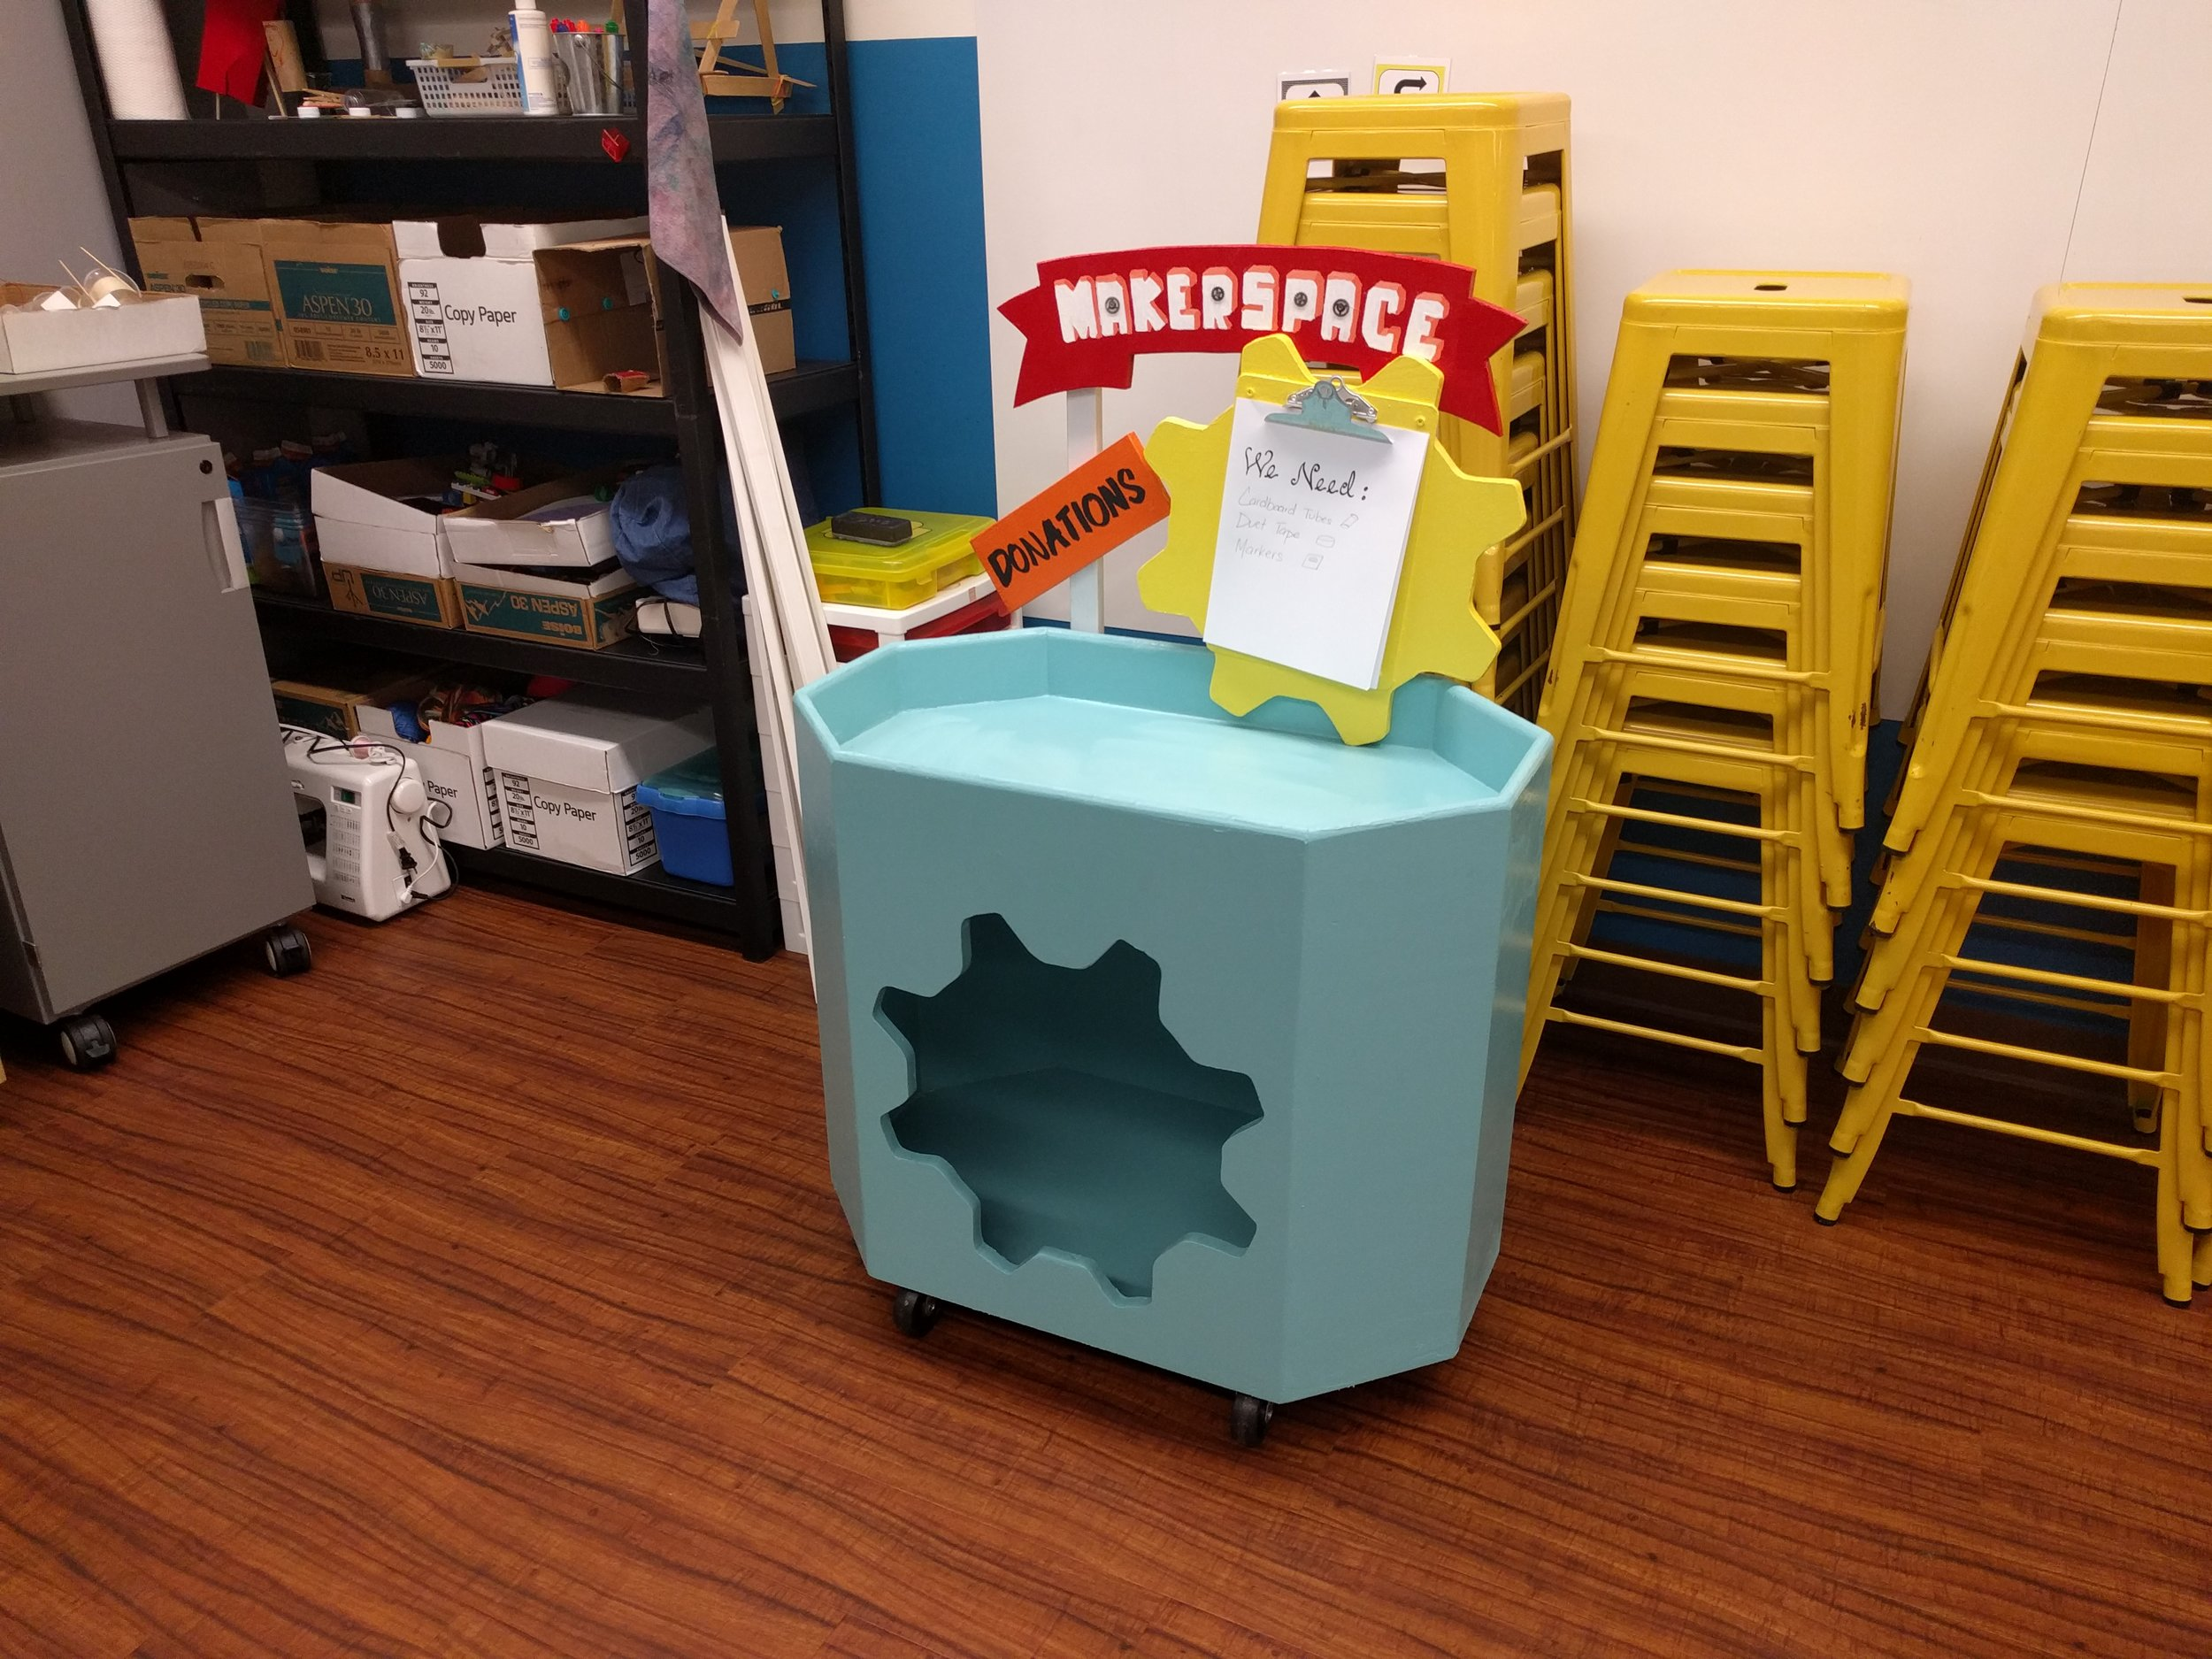 Donation Box for MakerSpace